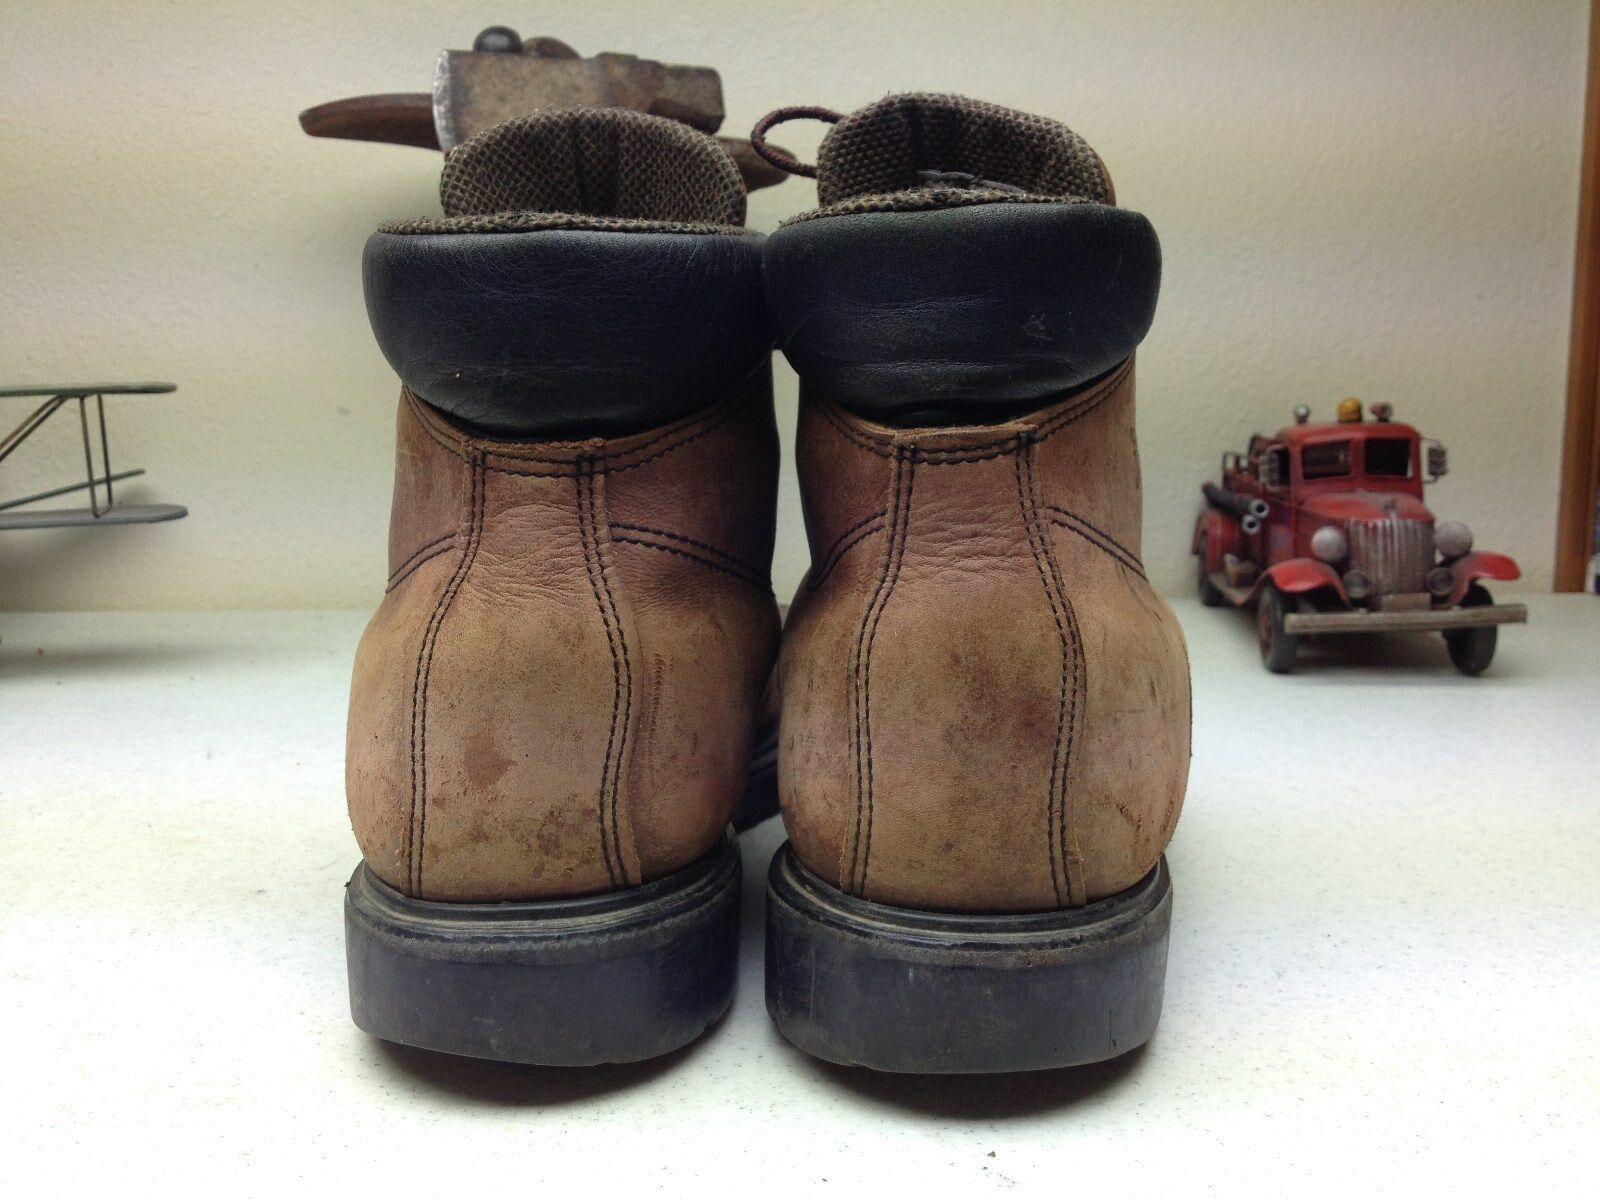 bd6aac18c90f55 ... BROWN DISTRESSED MADE IN A RED WING LACE UP WORK CHORE DAY CHILLIN   BOOTS 13 ...